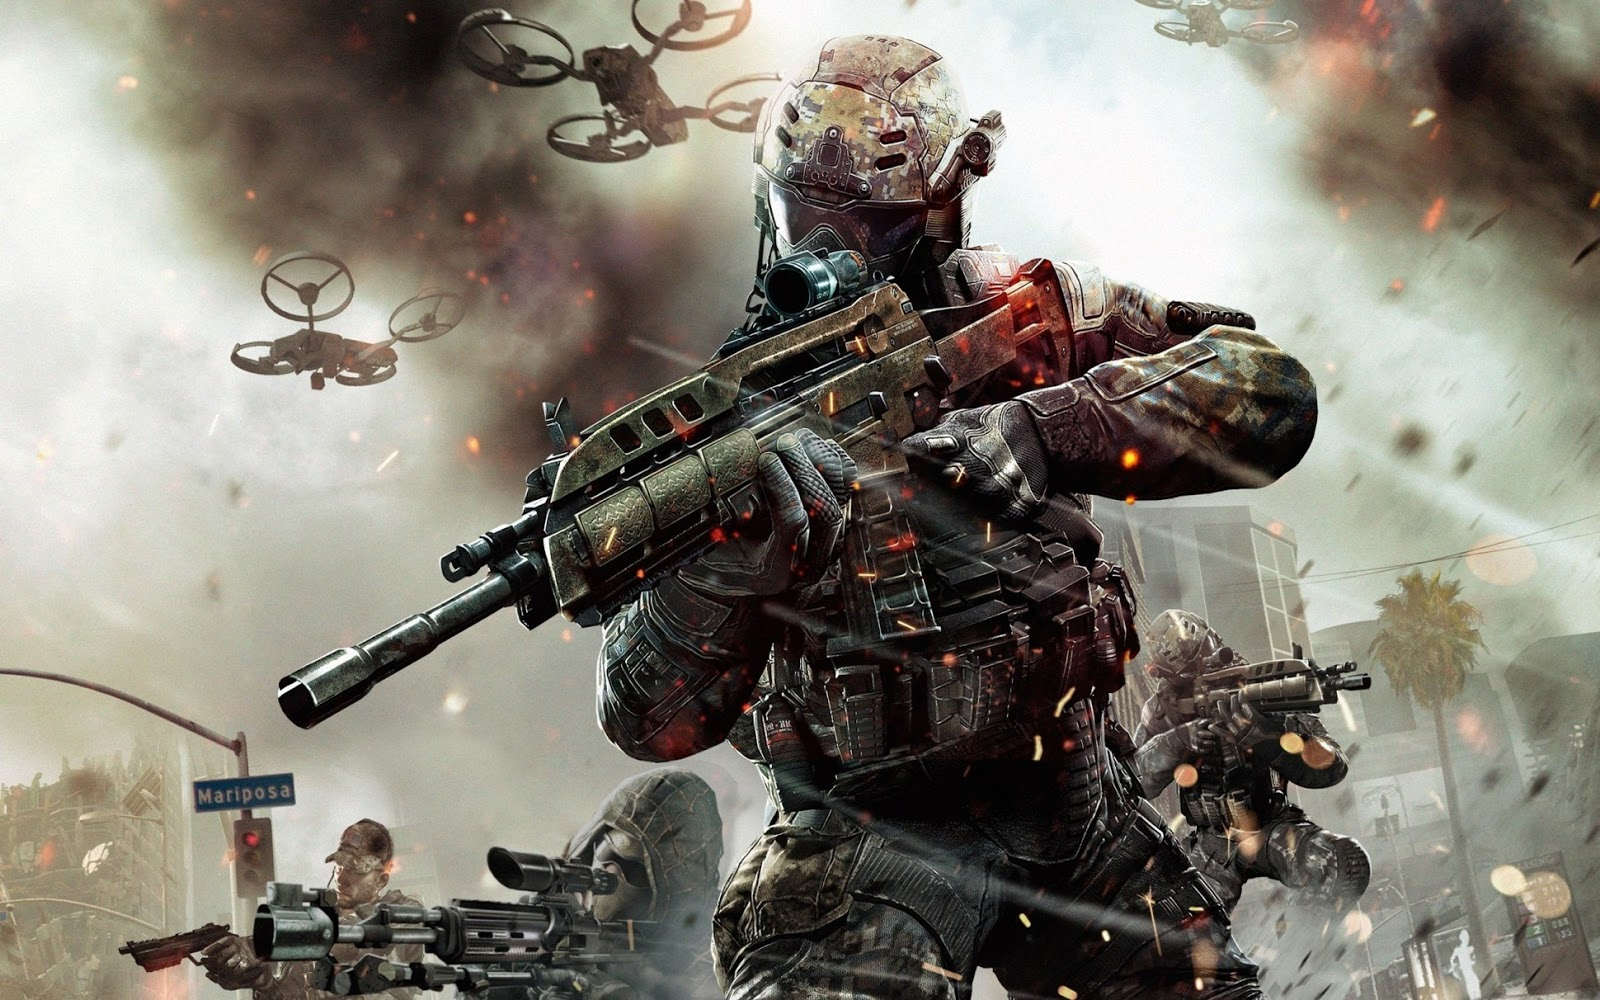 throughout playing black ops iii the player can expect to see a lot of violence and warfare which hasn t really changed since that is what call of duty is